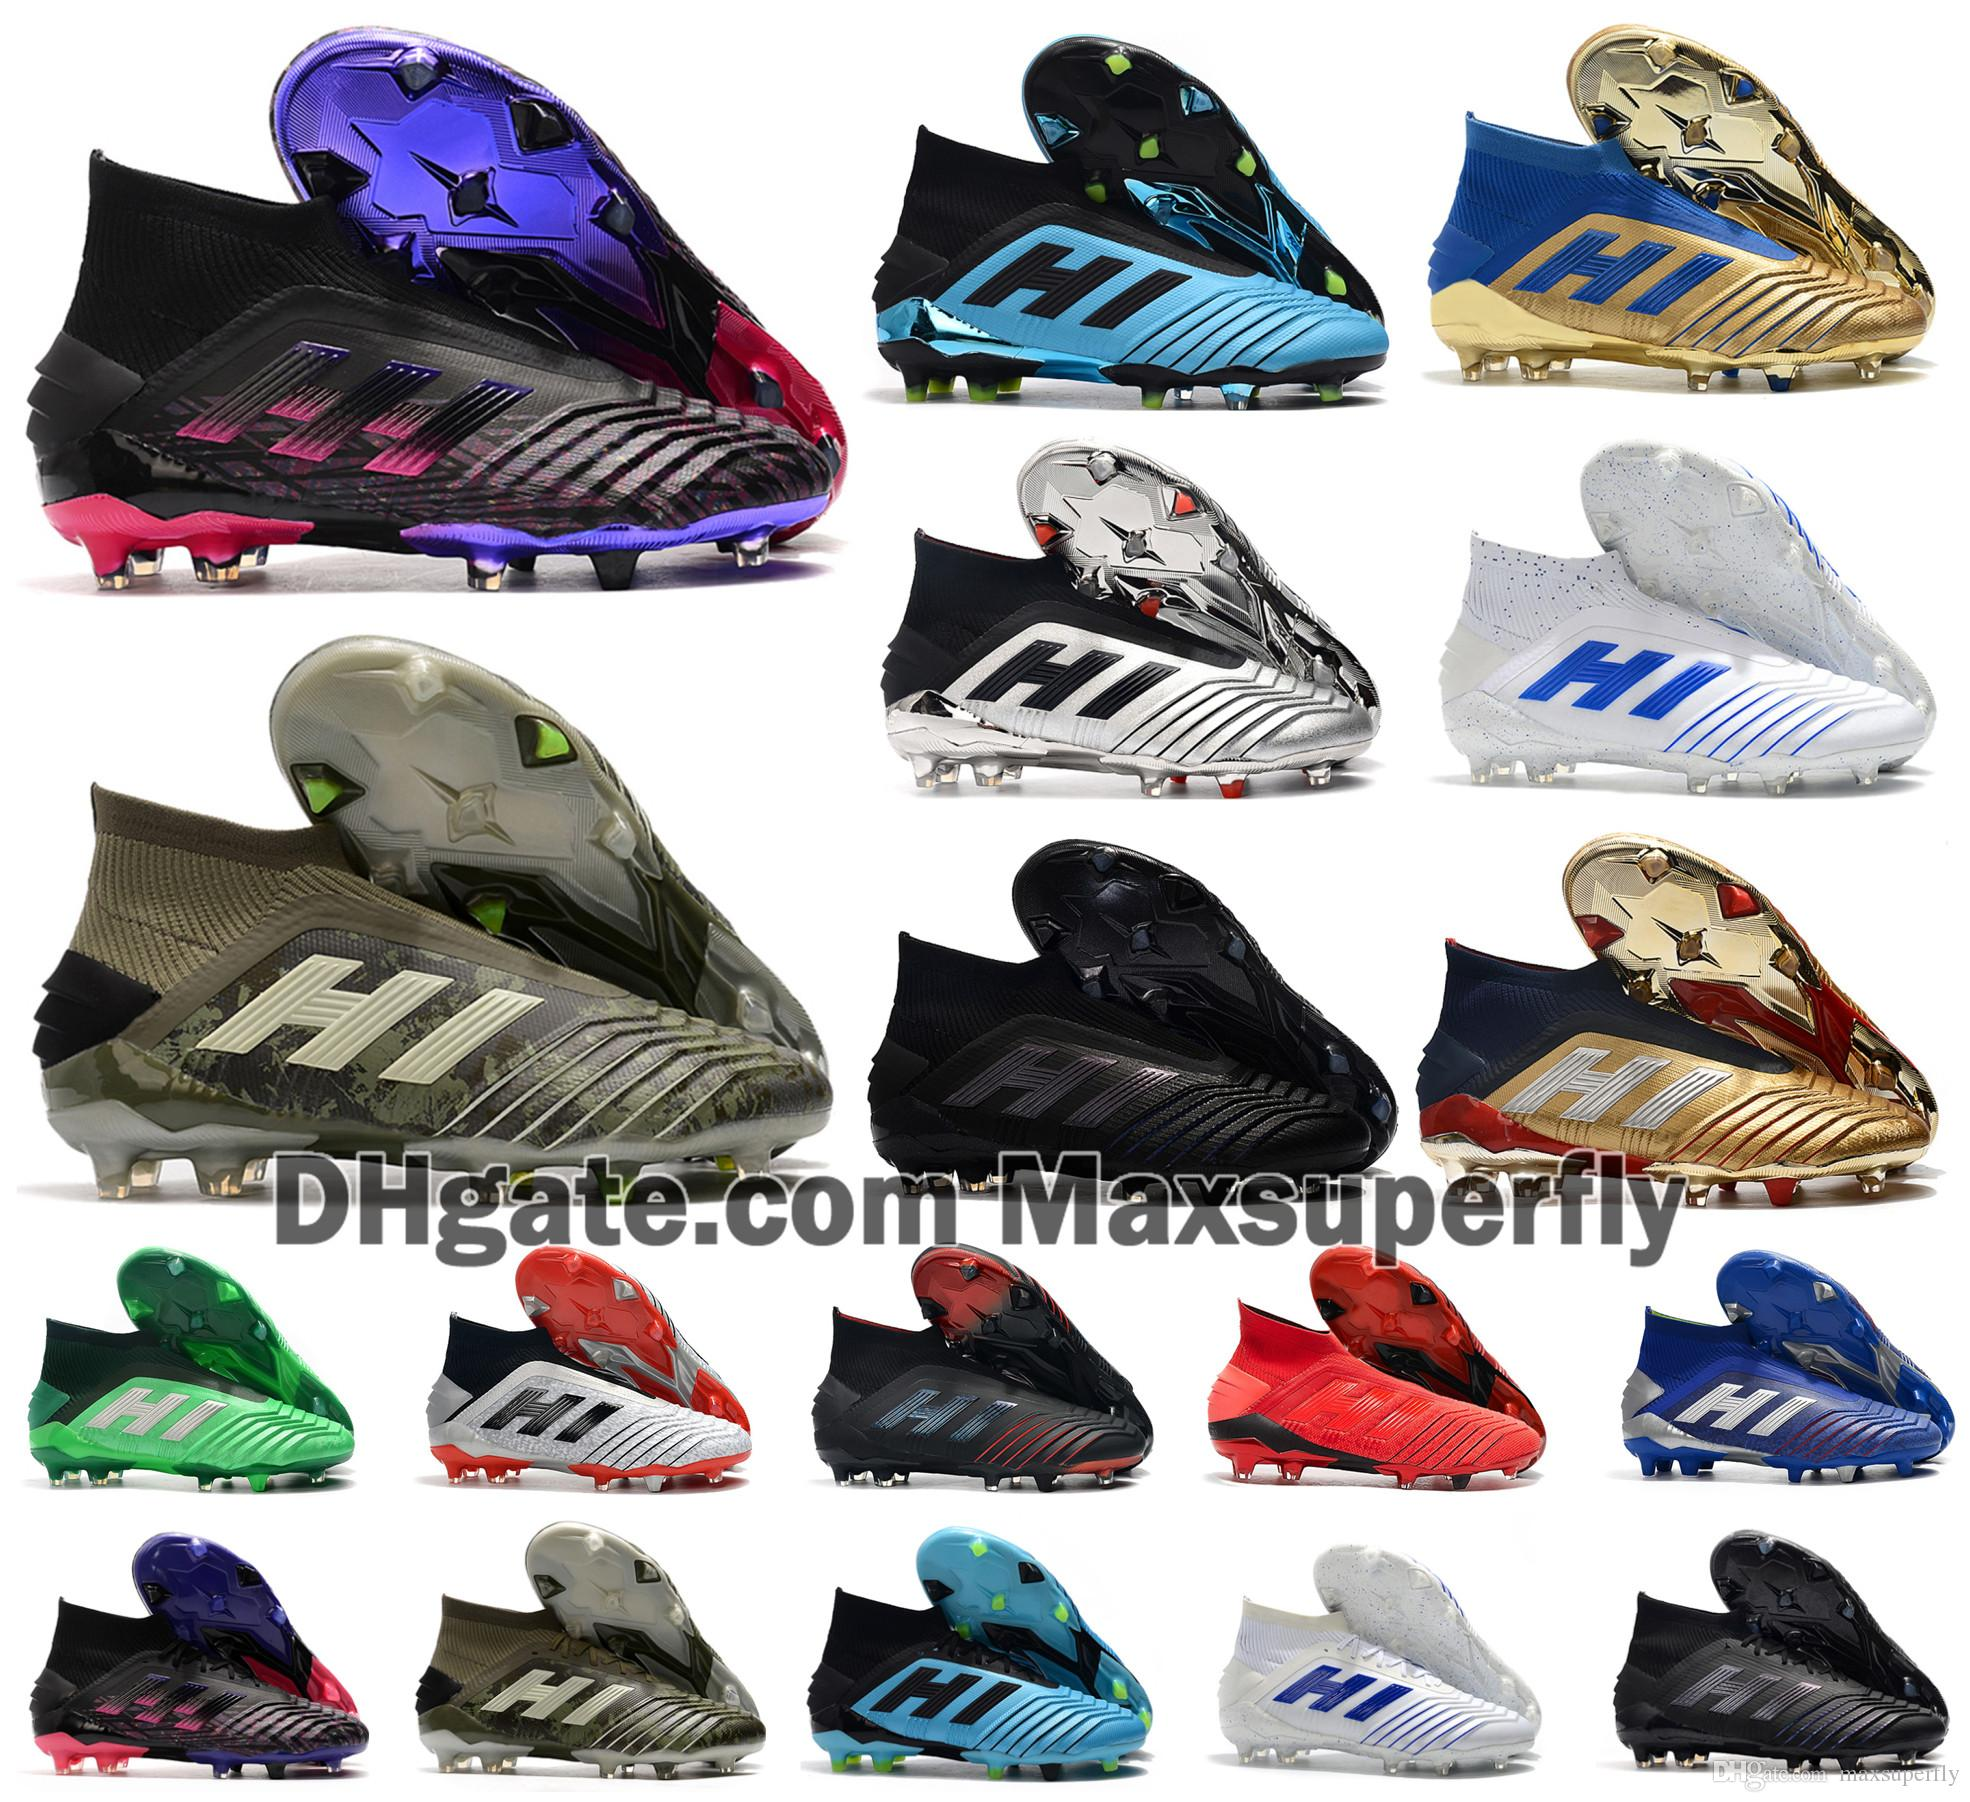 2020 2020 Hot Predator 19+ 19.1 FG PP Paul Pogba Season 6 6th Encryption Code Mens Boys Soccer Football Shoes 19+X Cleats Boots Cheap Size 39 45 From